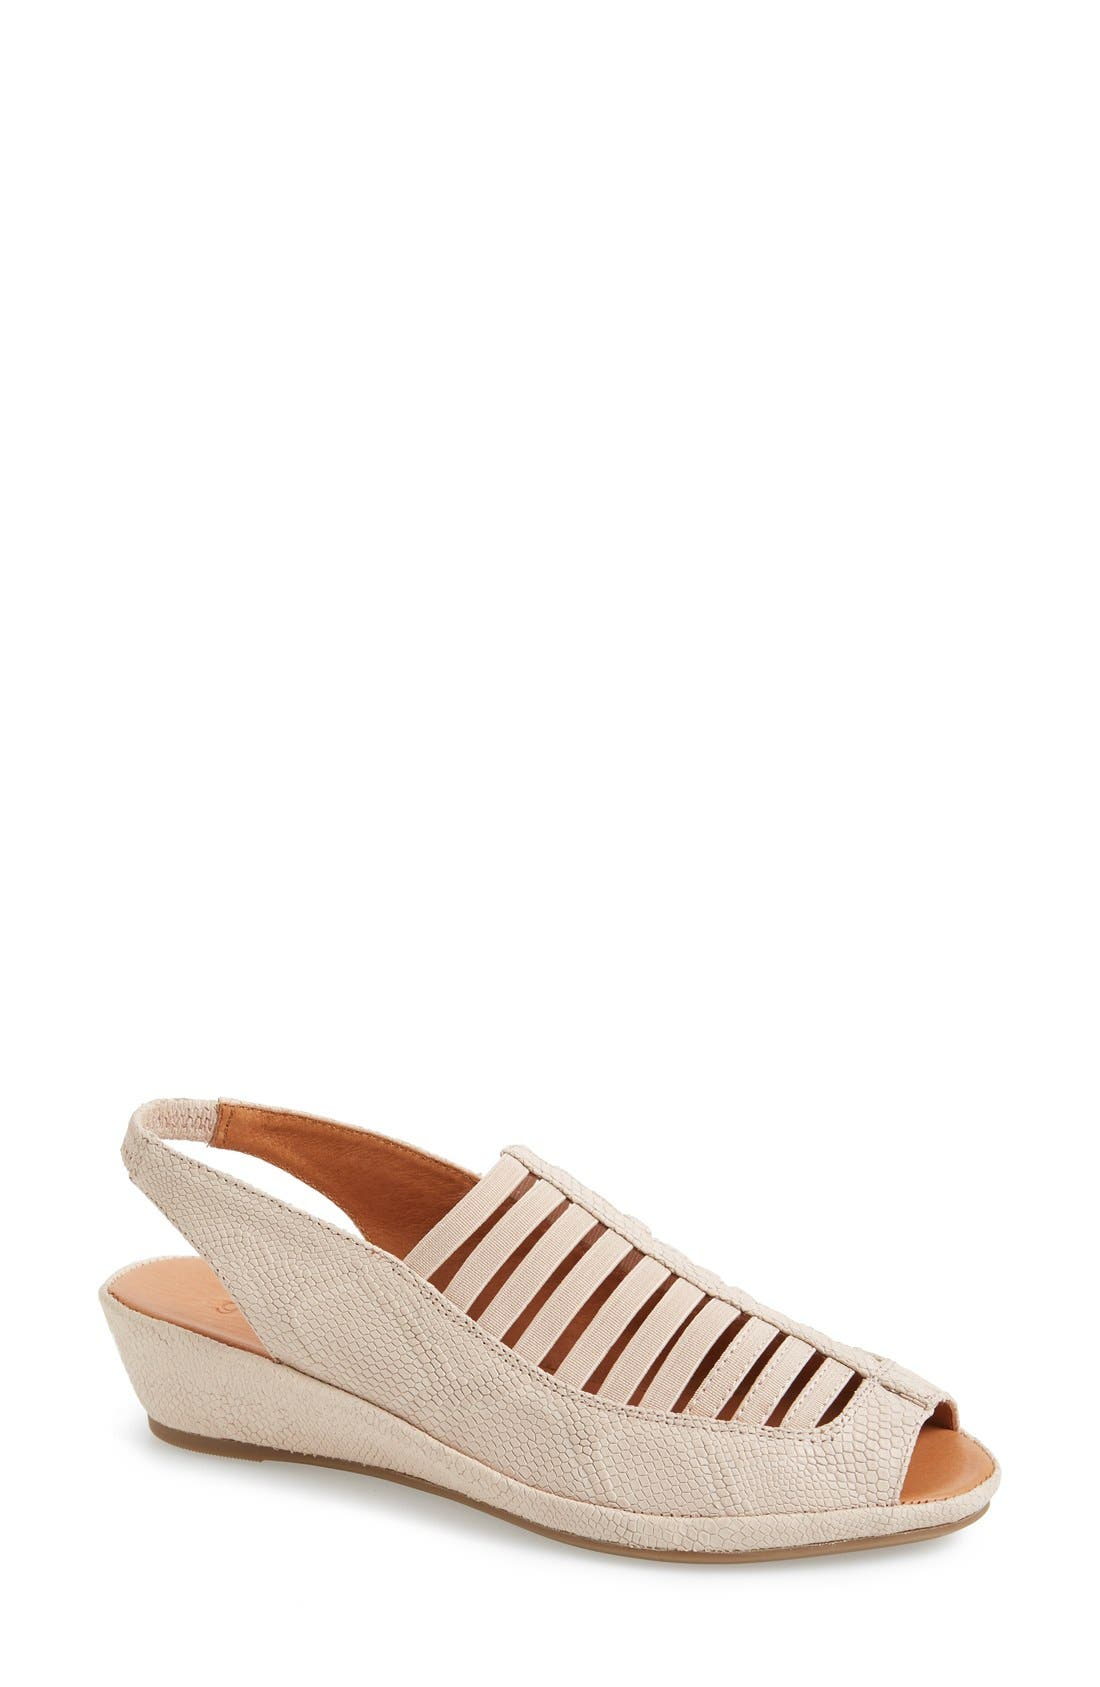 by Kenneth Cole 'Lee' Sandal,                             Main thumbnail 6, color,